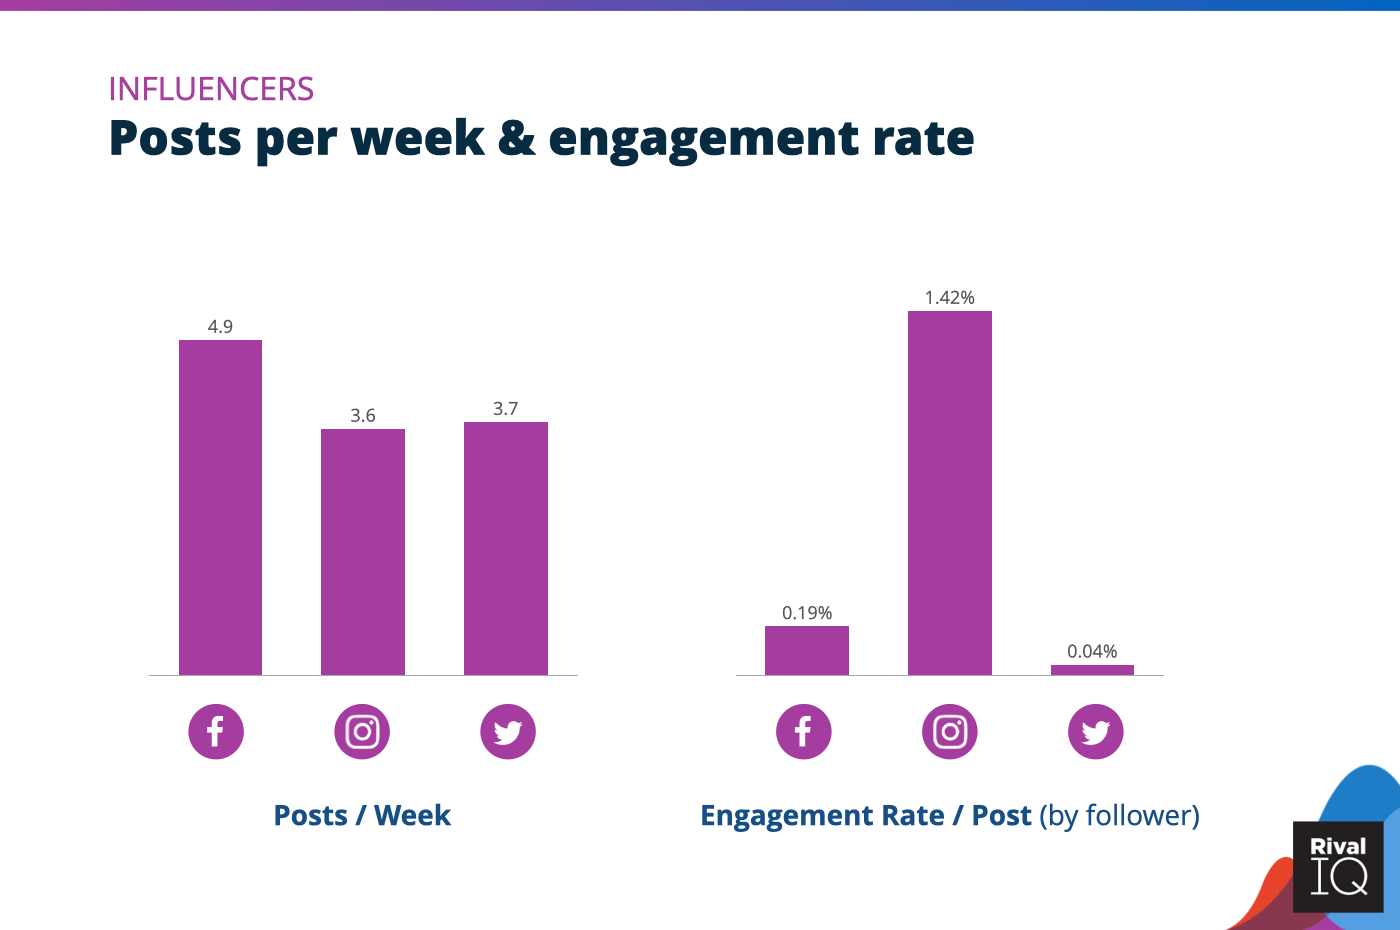 Chart of Posts per week and engagement rate per post across all channels, Influencers